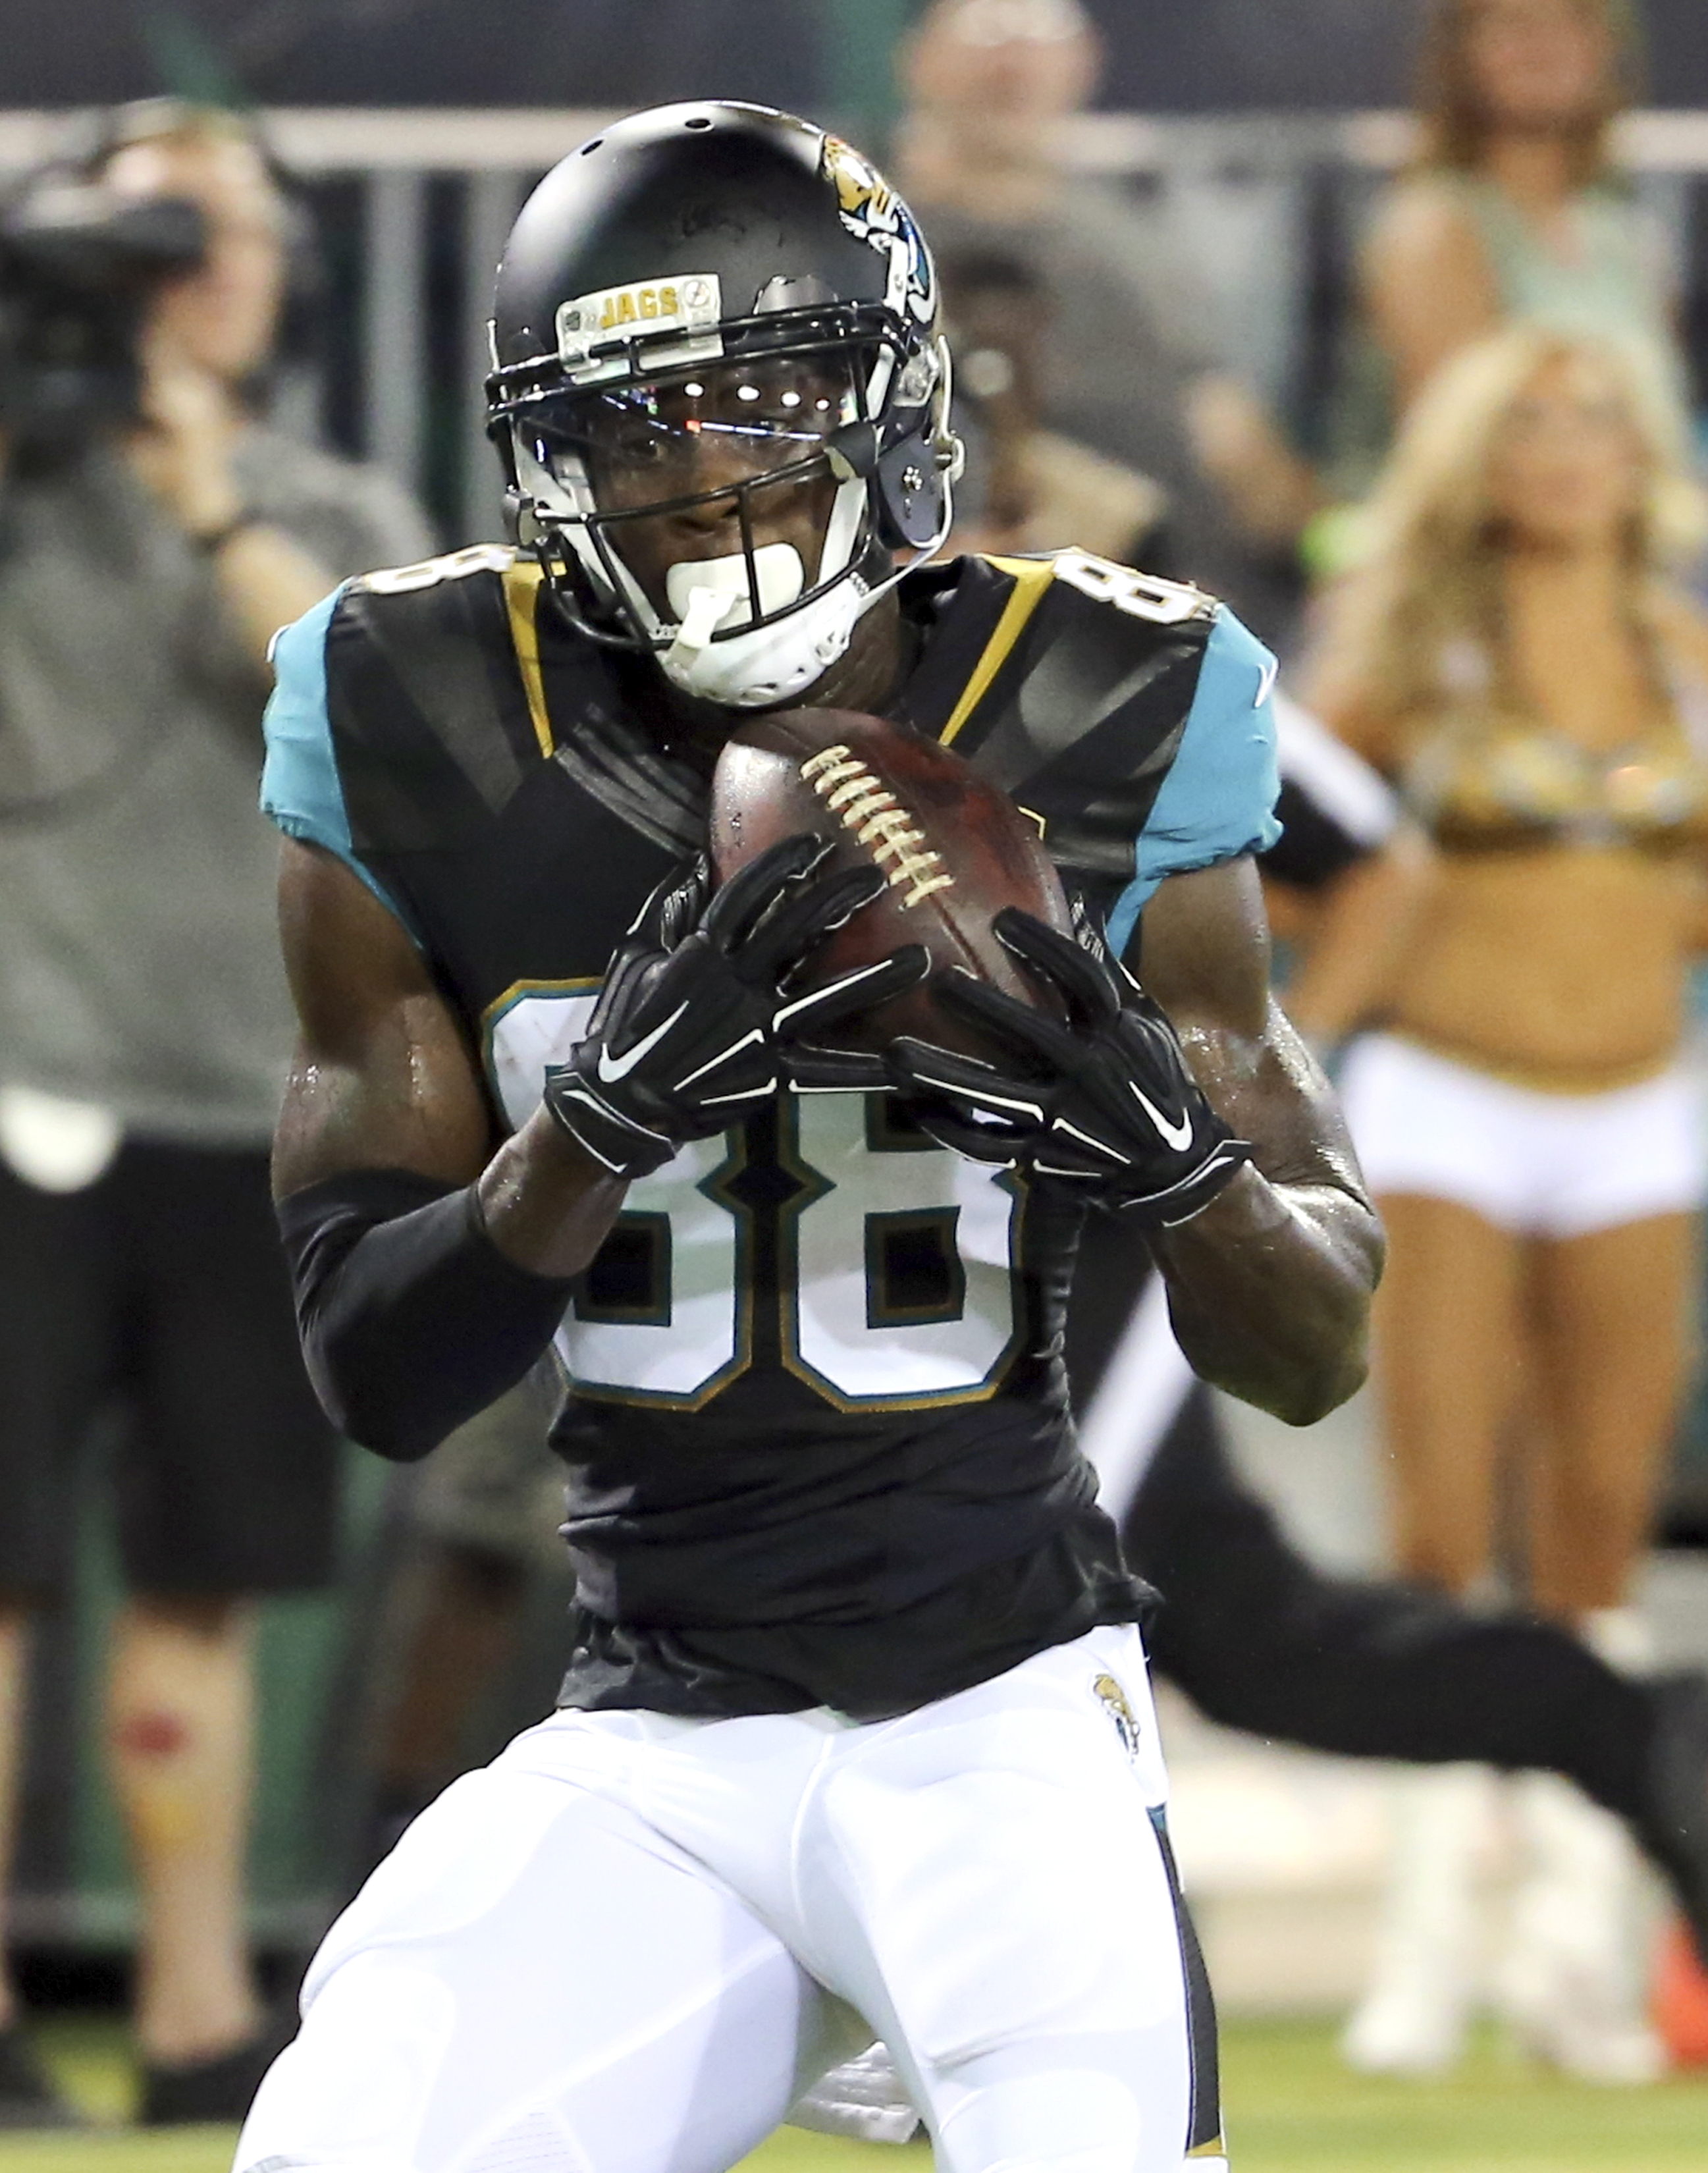 FILE - In this Aug. 20, 2016, file photo, Jacksonville Jaguars wide receiver Allen Hurns (88) makes a catch for a 24-yard touchdown against the Tampa Bay Buccaneers during the first half of an NFL preseason football game in Jacksonville, Fla. Hurns and Al